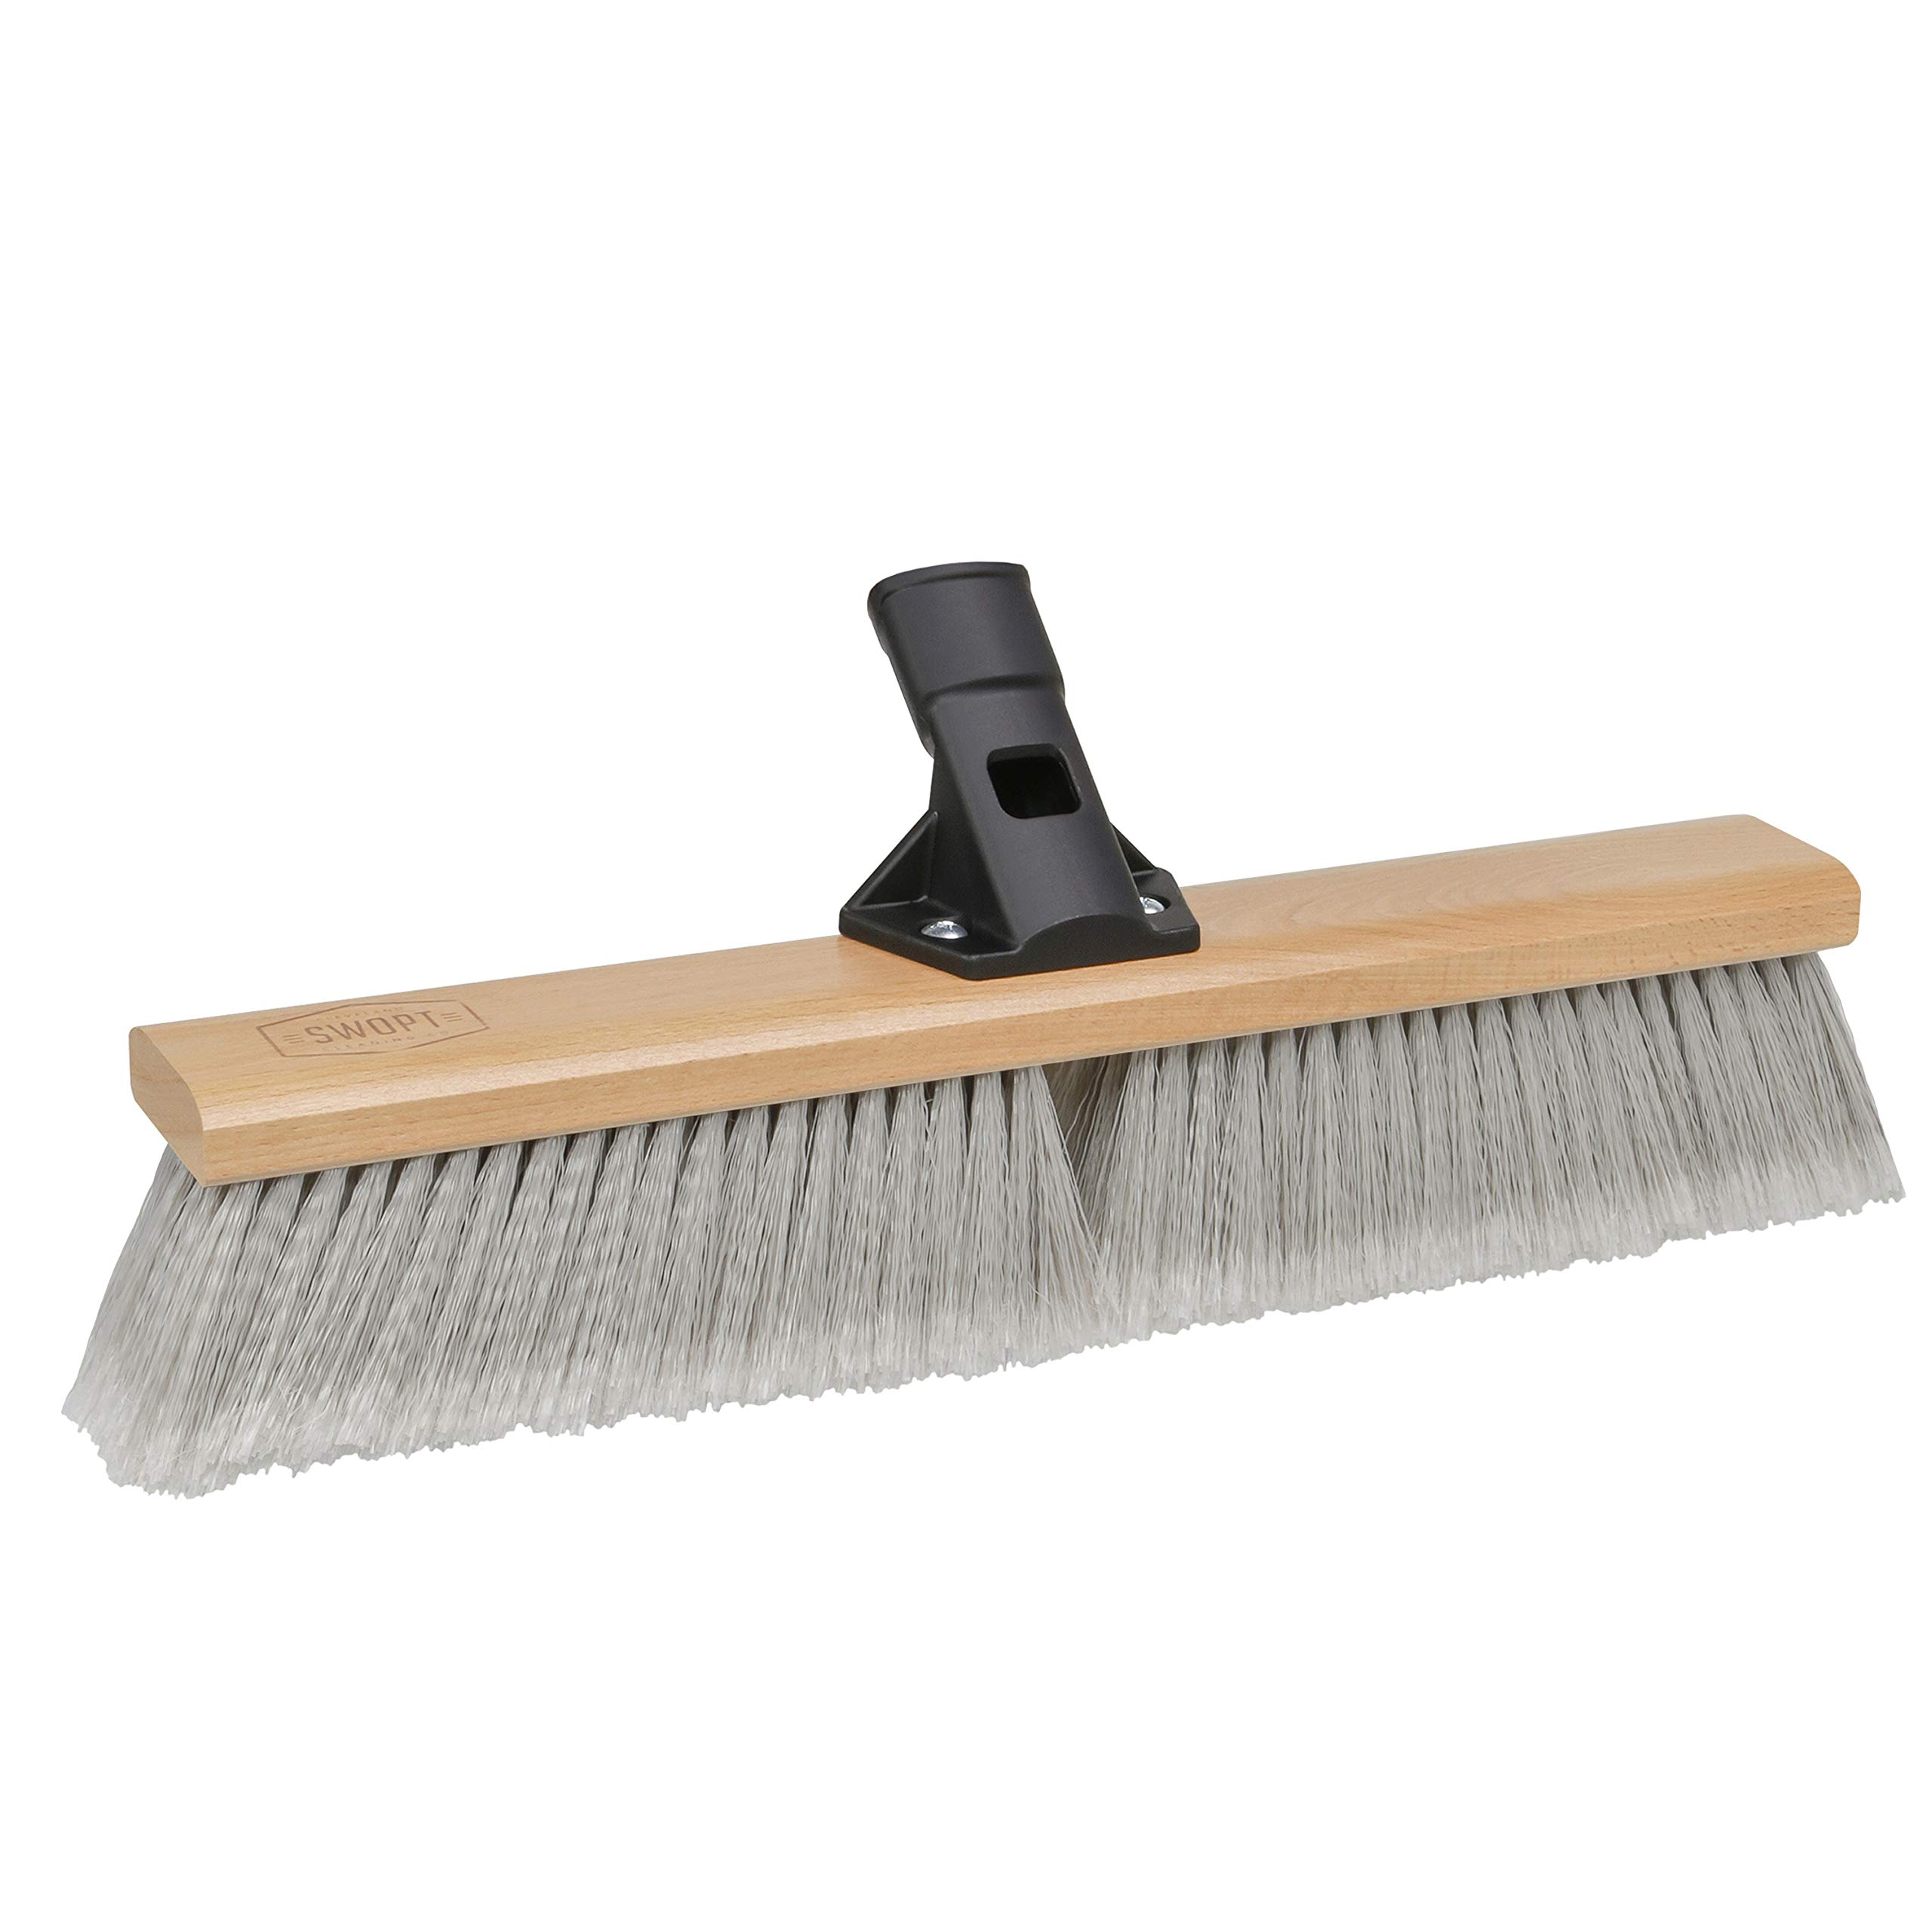 "SWOPT 18"" Premium Smooth Surface Push Broom Head – Push Broom for Indoor Use, Picking Up Finer Particles – Interchangeable with Other SWOPT Products for More Efficient Cleaning and Storage, Head Only, Handle Sold Separately, 5115C4"